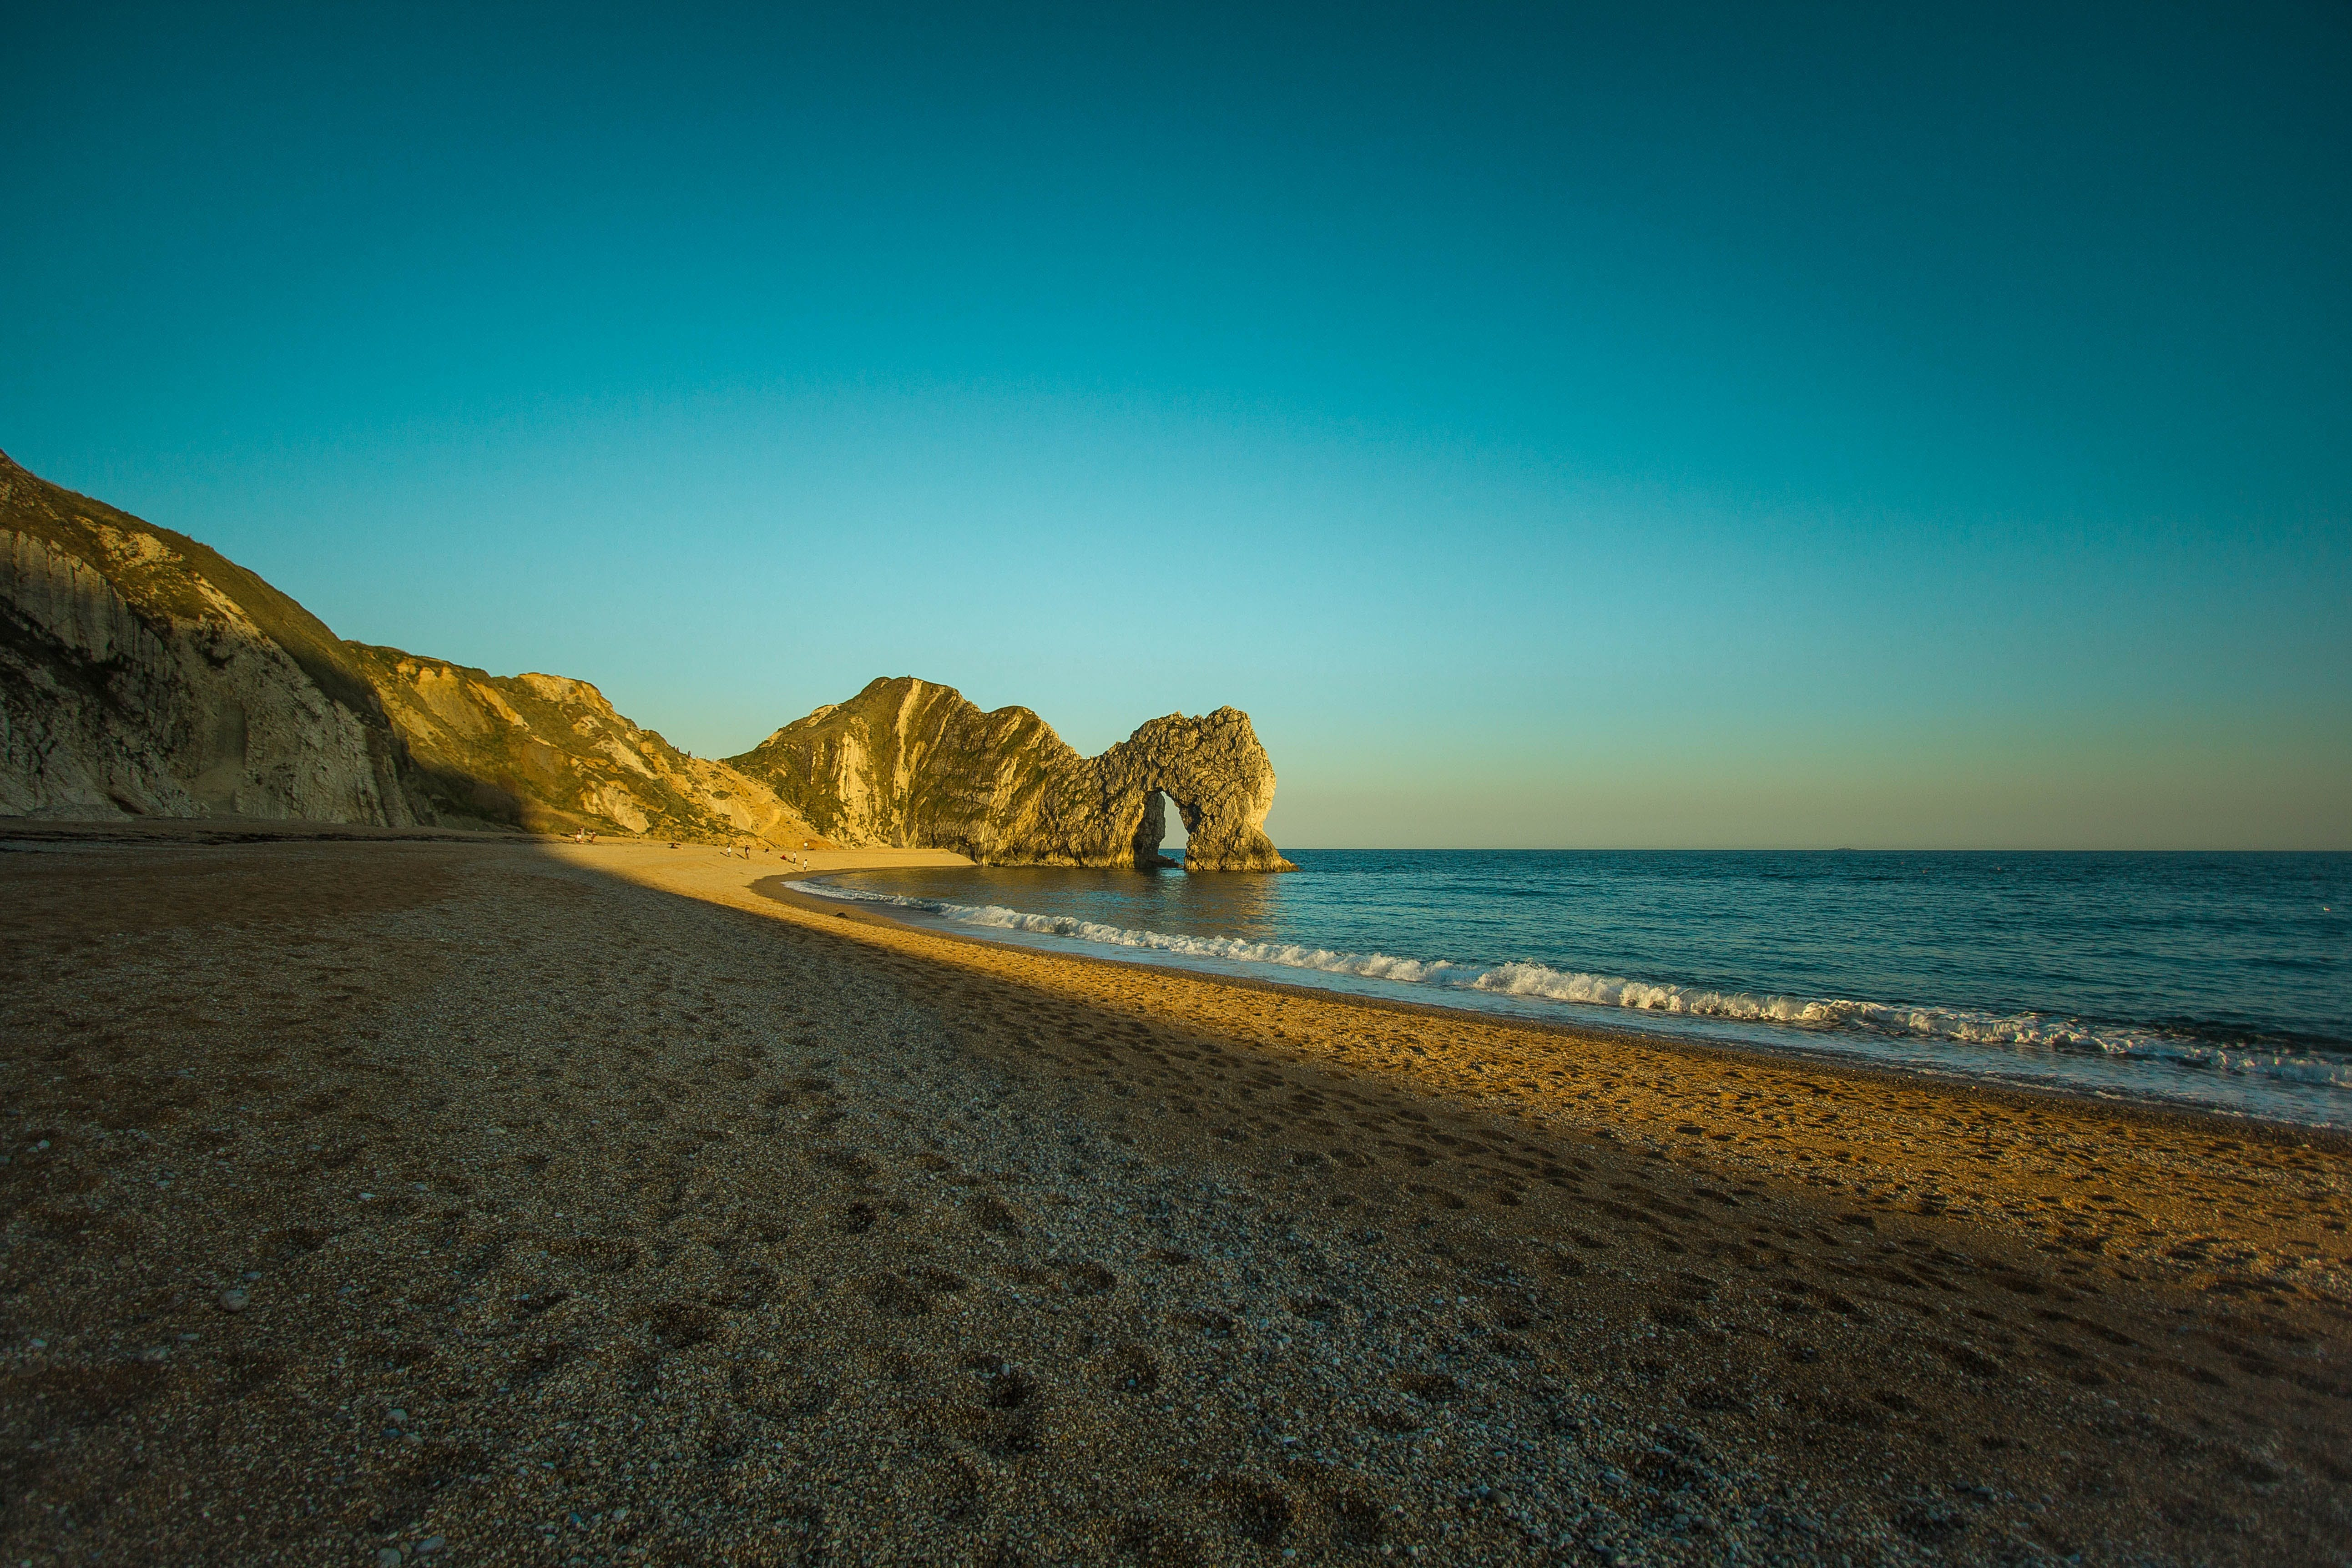 Free stock photo of ocean, united states of america, durdle door, dorset